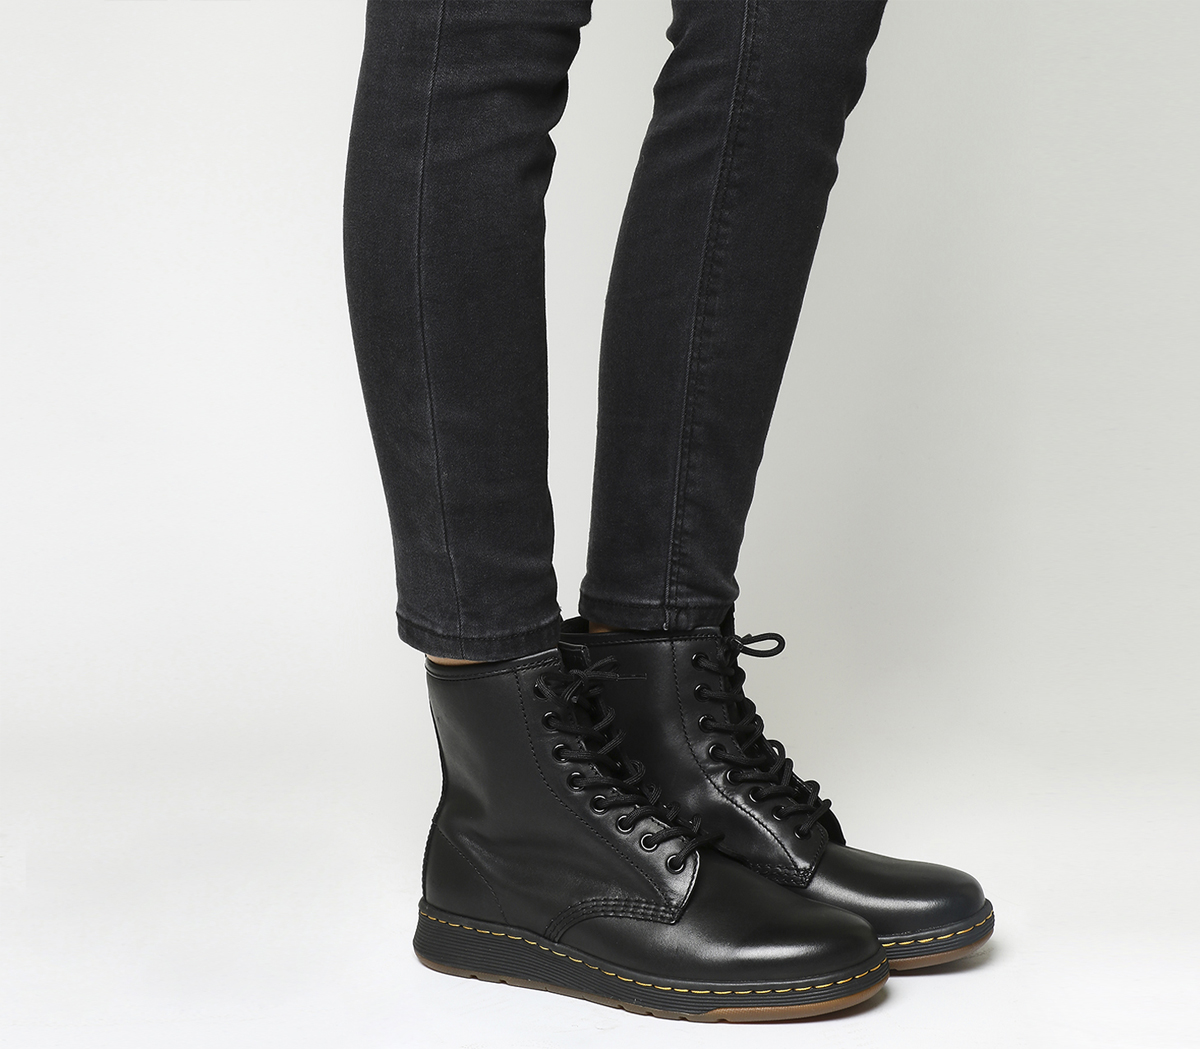 Sentinel Womens Dr. Martens Black Leather Lace Up Ankle Boots Size UK 7  Ex- b7323641bb